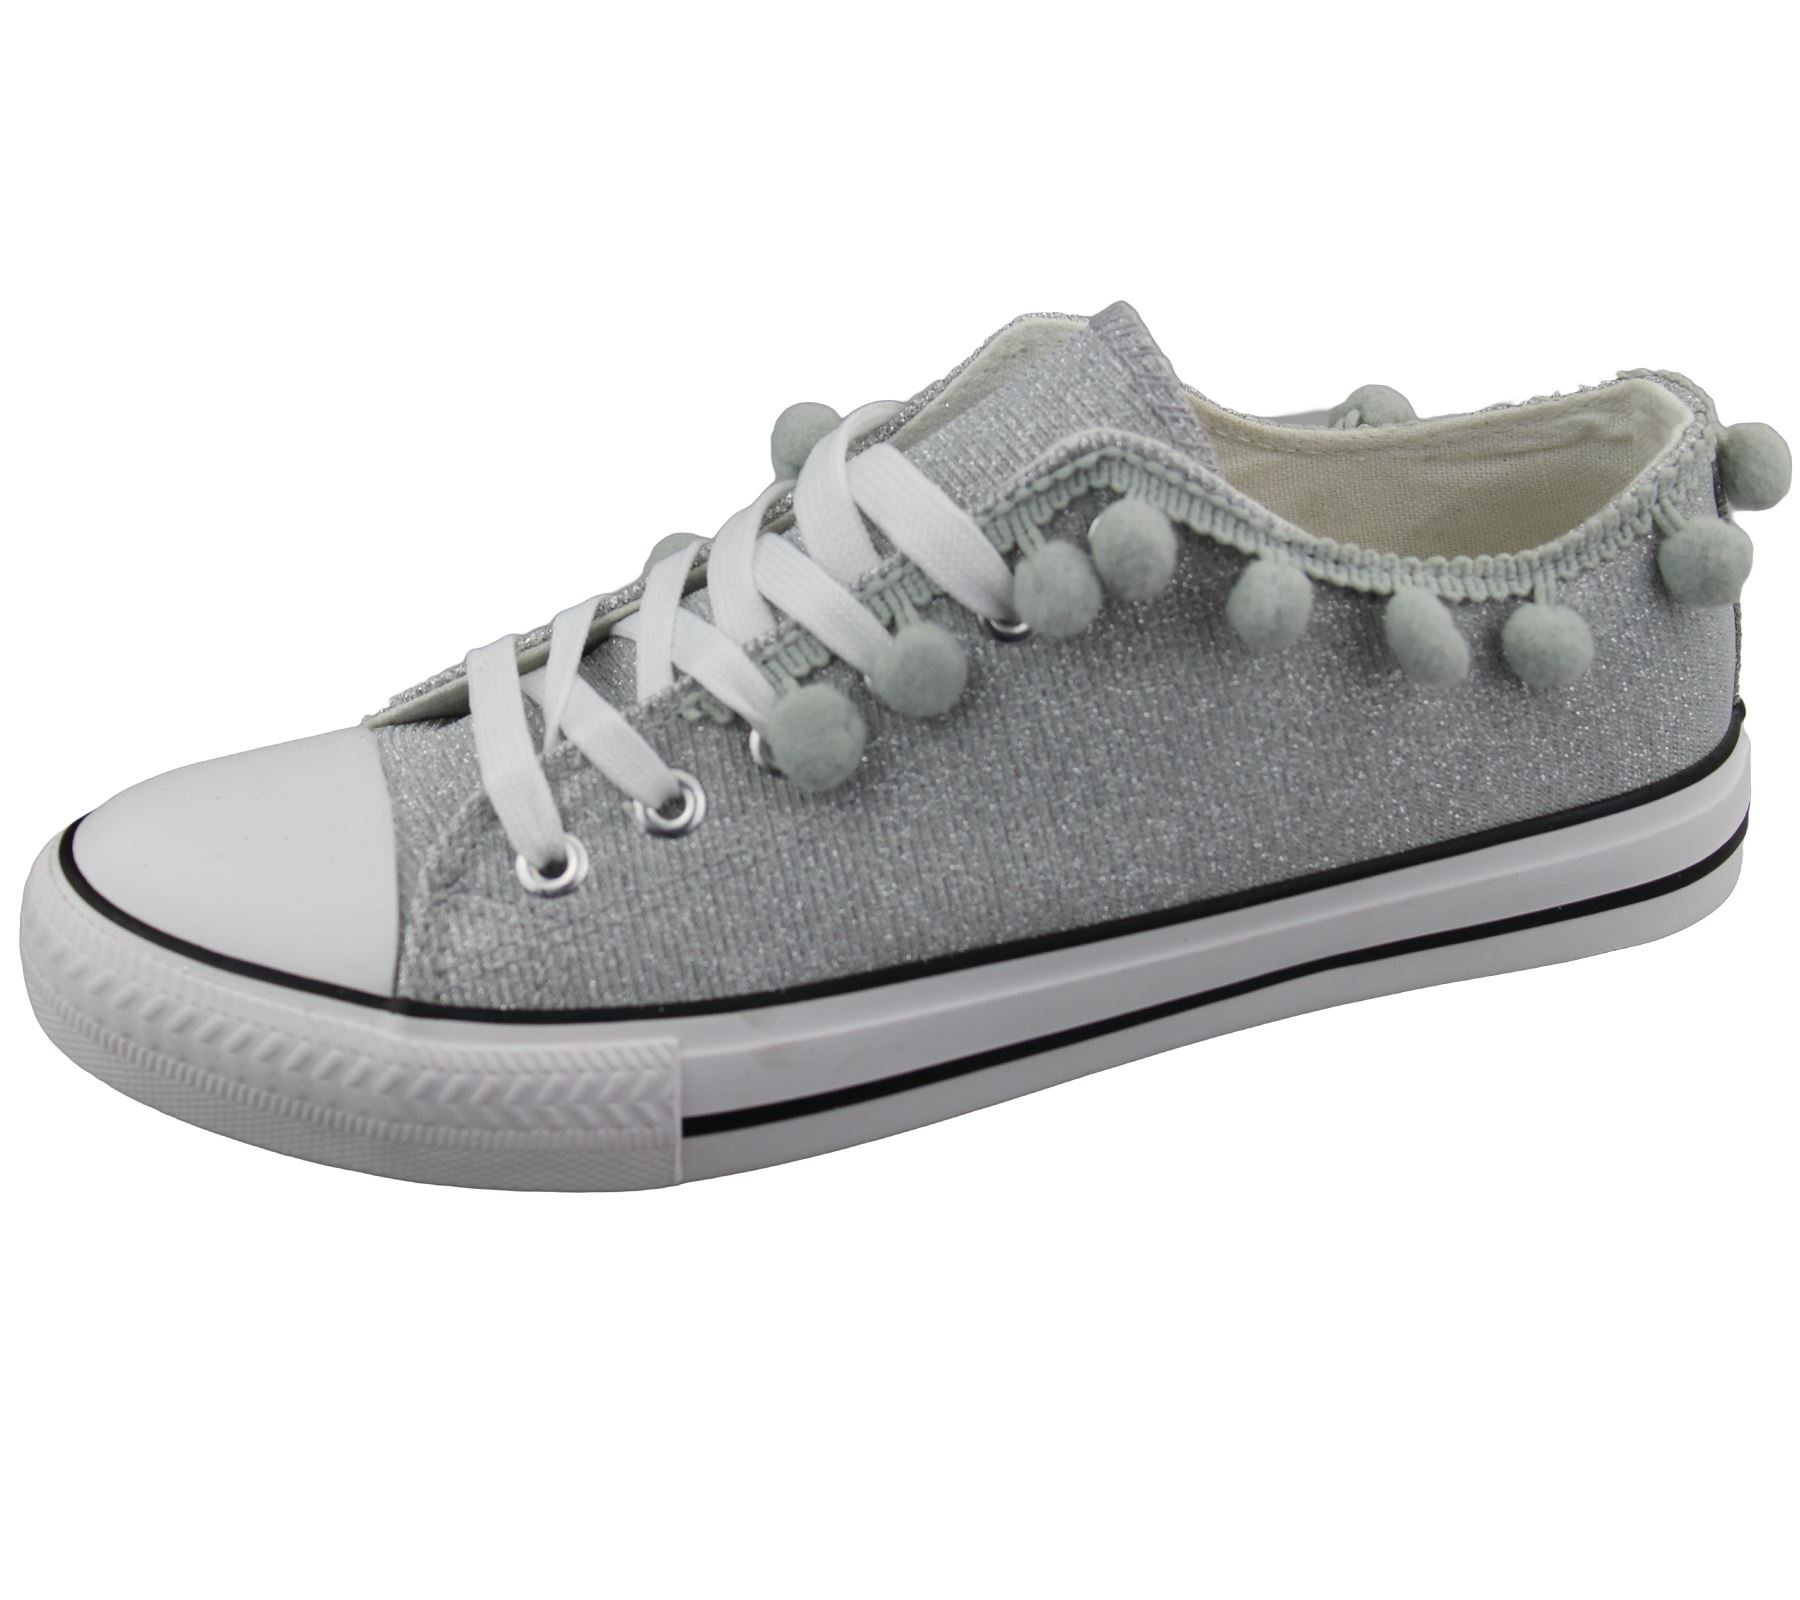 Womens-Sneakers-Flat-Pumps-Ladies-Glittered-Summer-Plimsole-Canvas-Shoes thumbnail 14